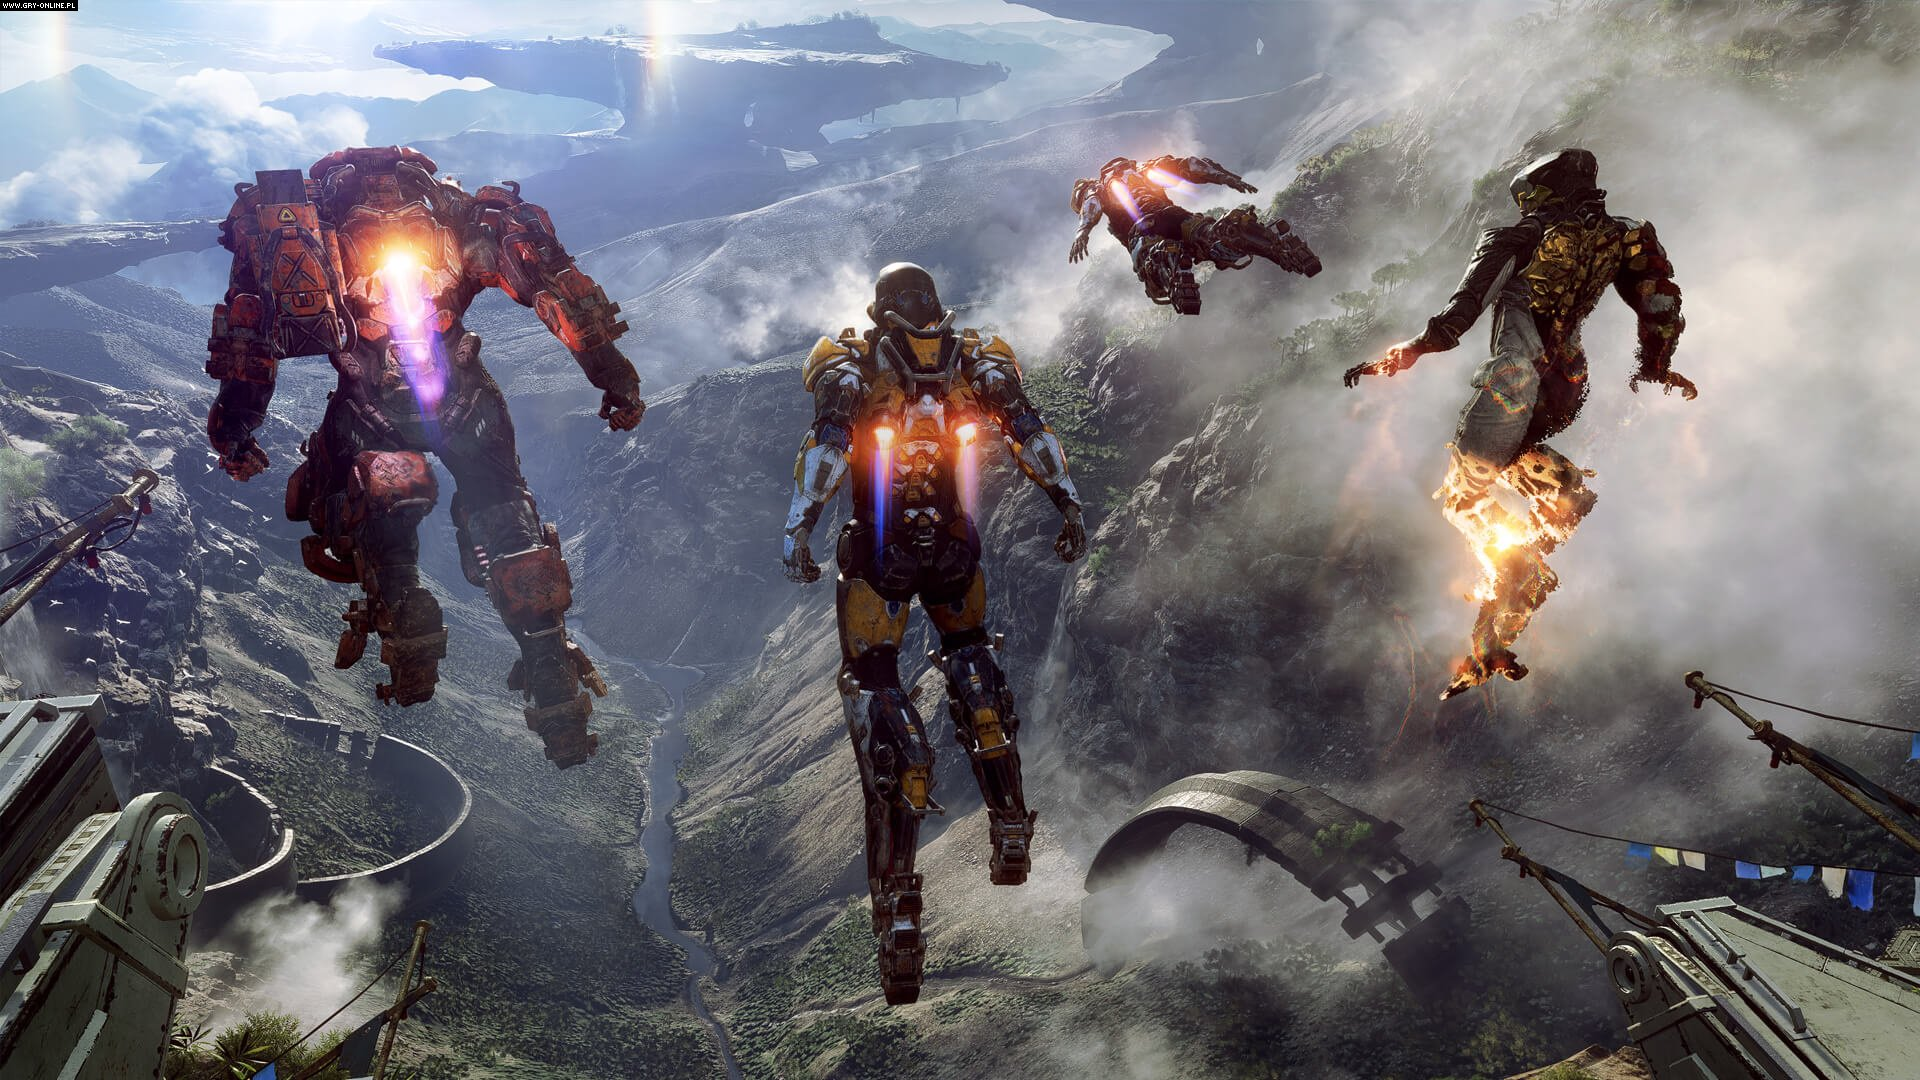 Anthem PC, PS4, XONE Games Image 34/34, BioWare Corporation, Electronic Arts Inc.